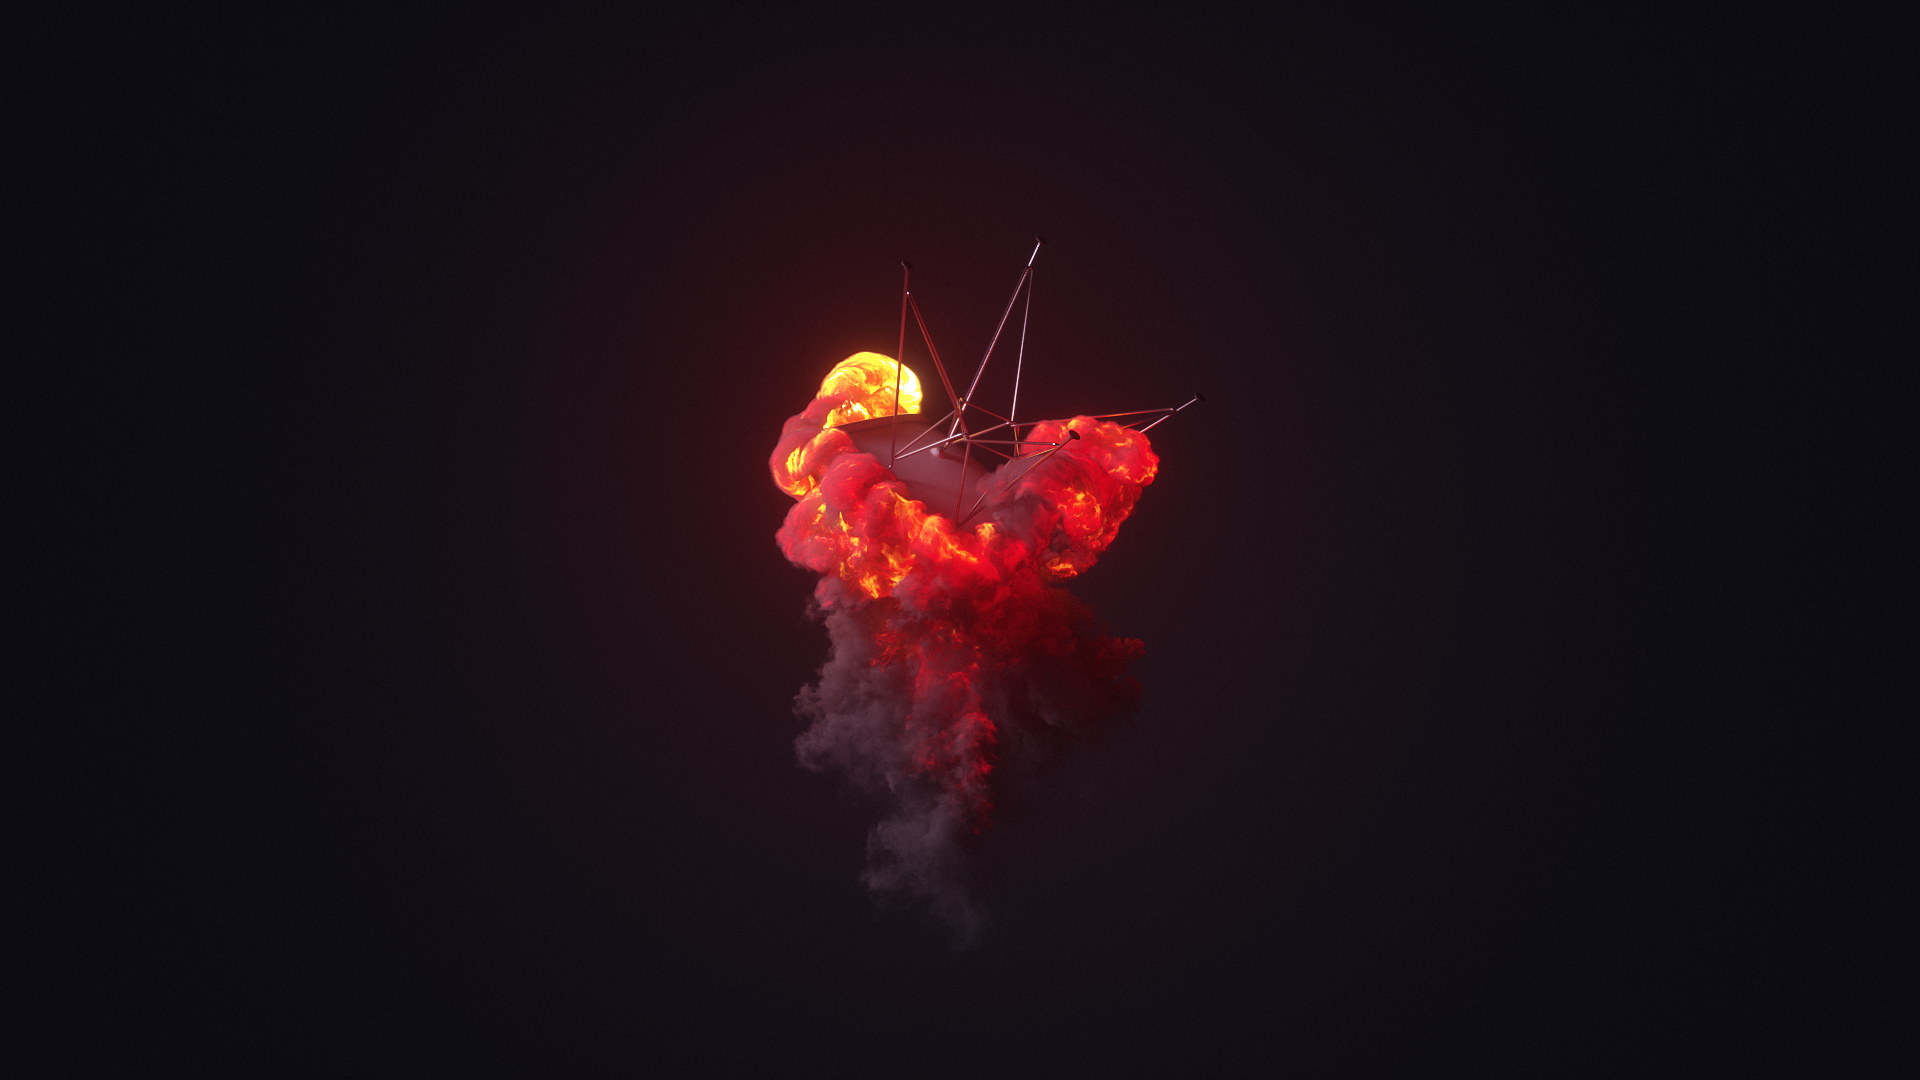 Volume Rendering with Octane Render for Cinema 4D - Turbulence FD - Chair Explosion #1